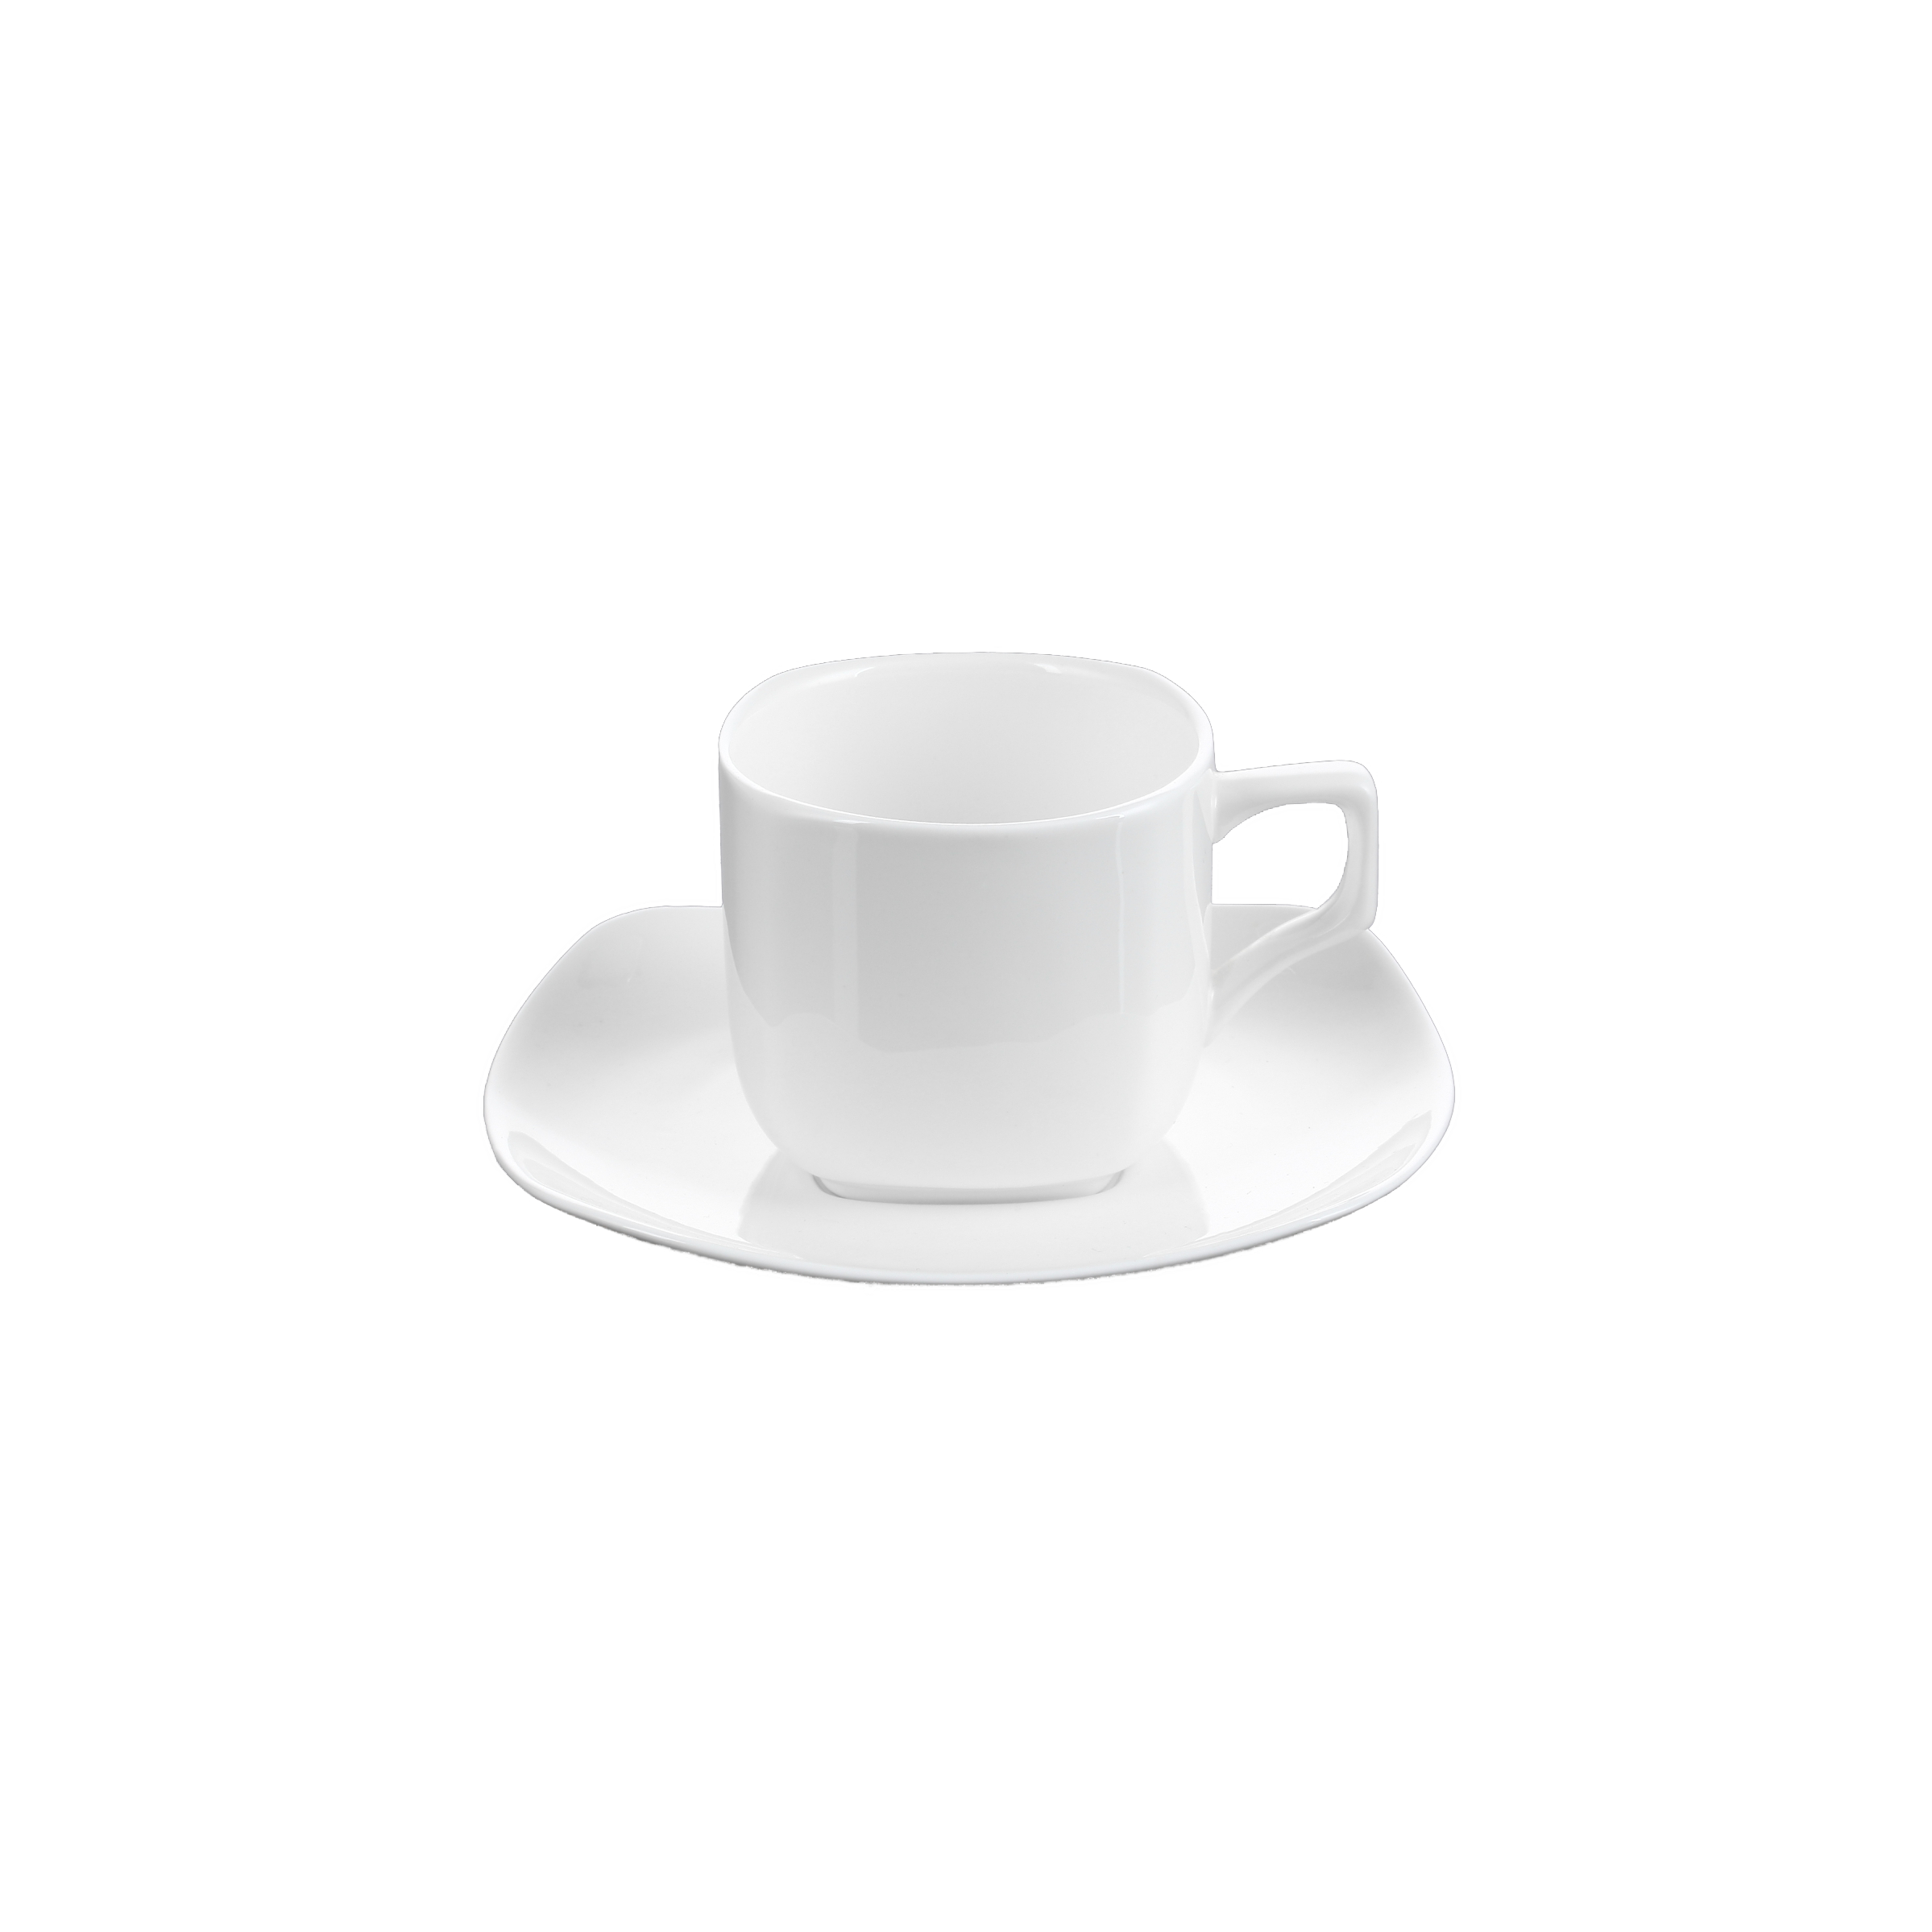 3 OZ | 90 ML COFFEE CUP & SAUCER 